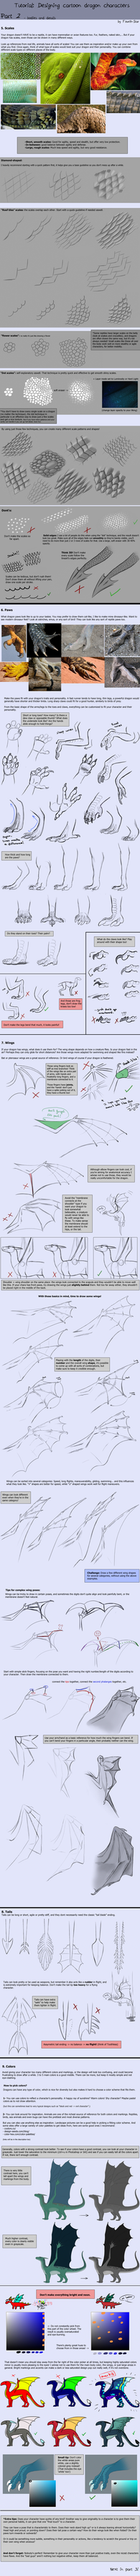 Tutorial: Dragon Designing Tips - part 2/3 by SeaSaltShrimp